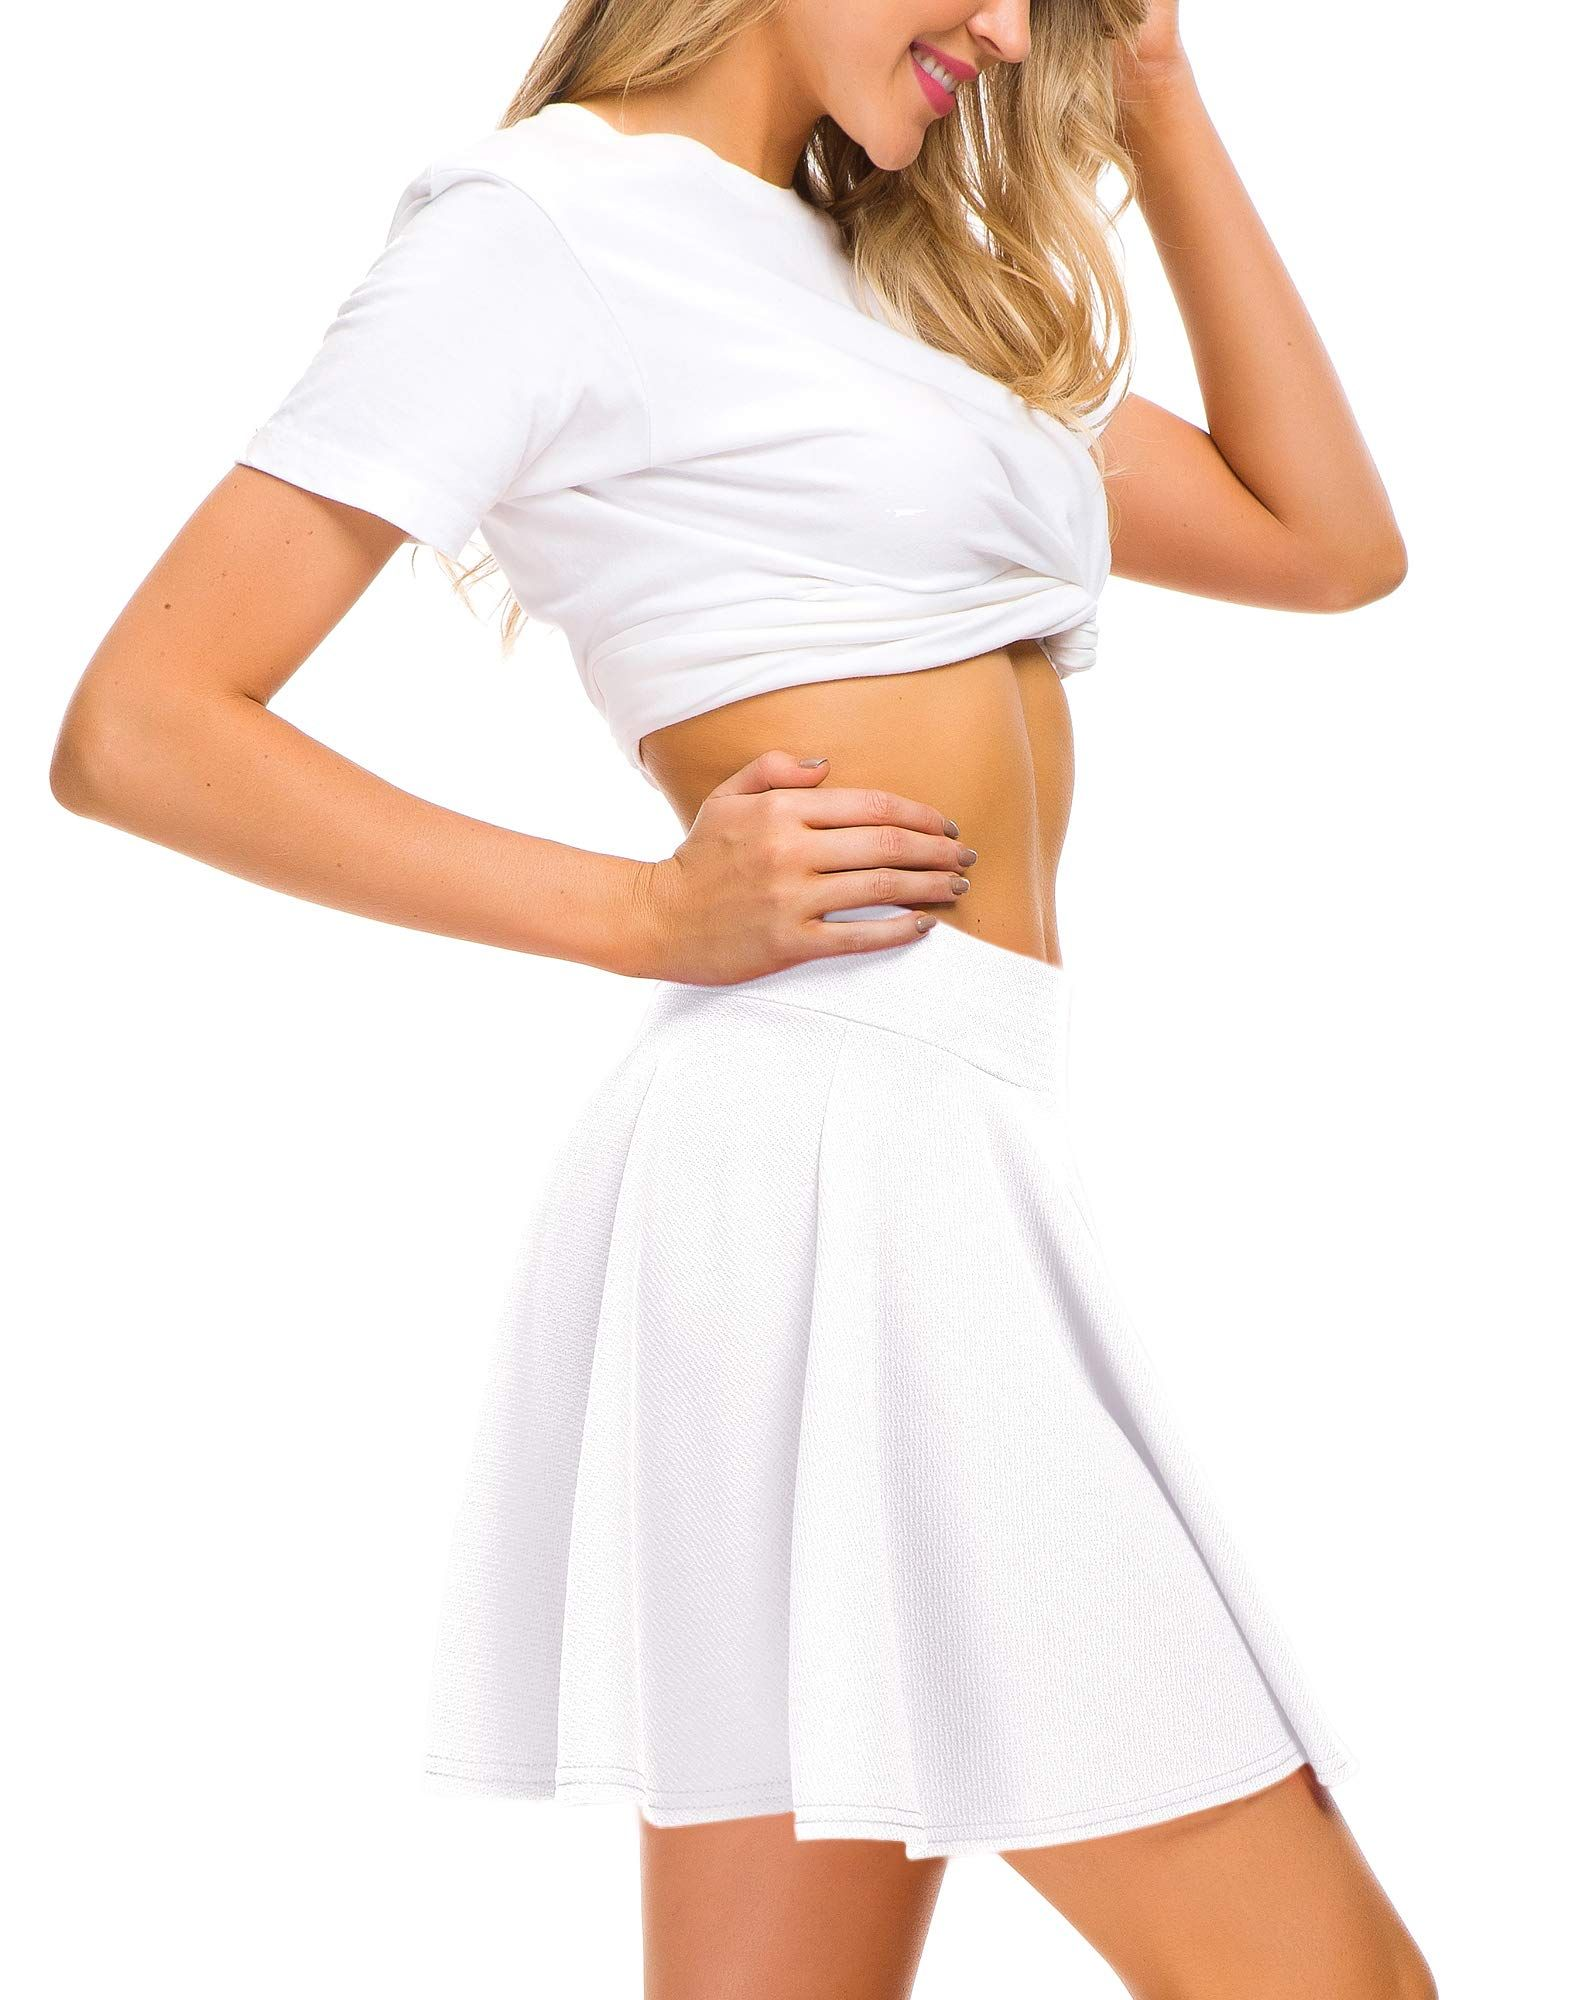 387362ca8 EXCHIC Women Stretch Waist Flared Mini Skater Skirt Casual Pleated Skirts S  White ** You can get additional details at the image link.